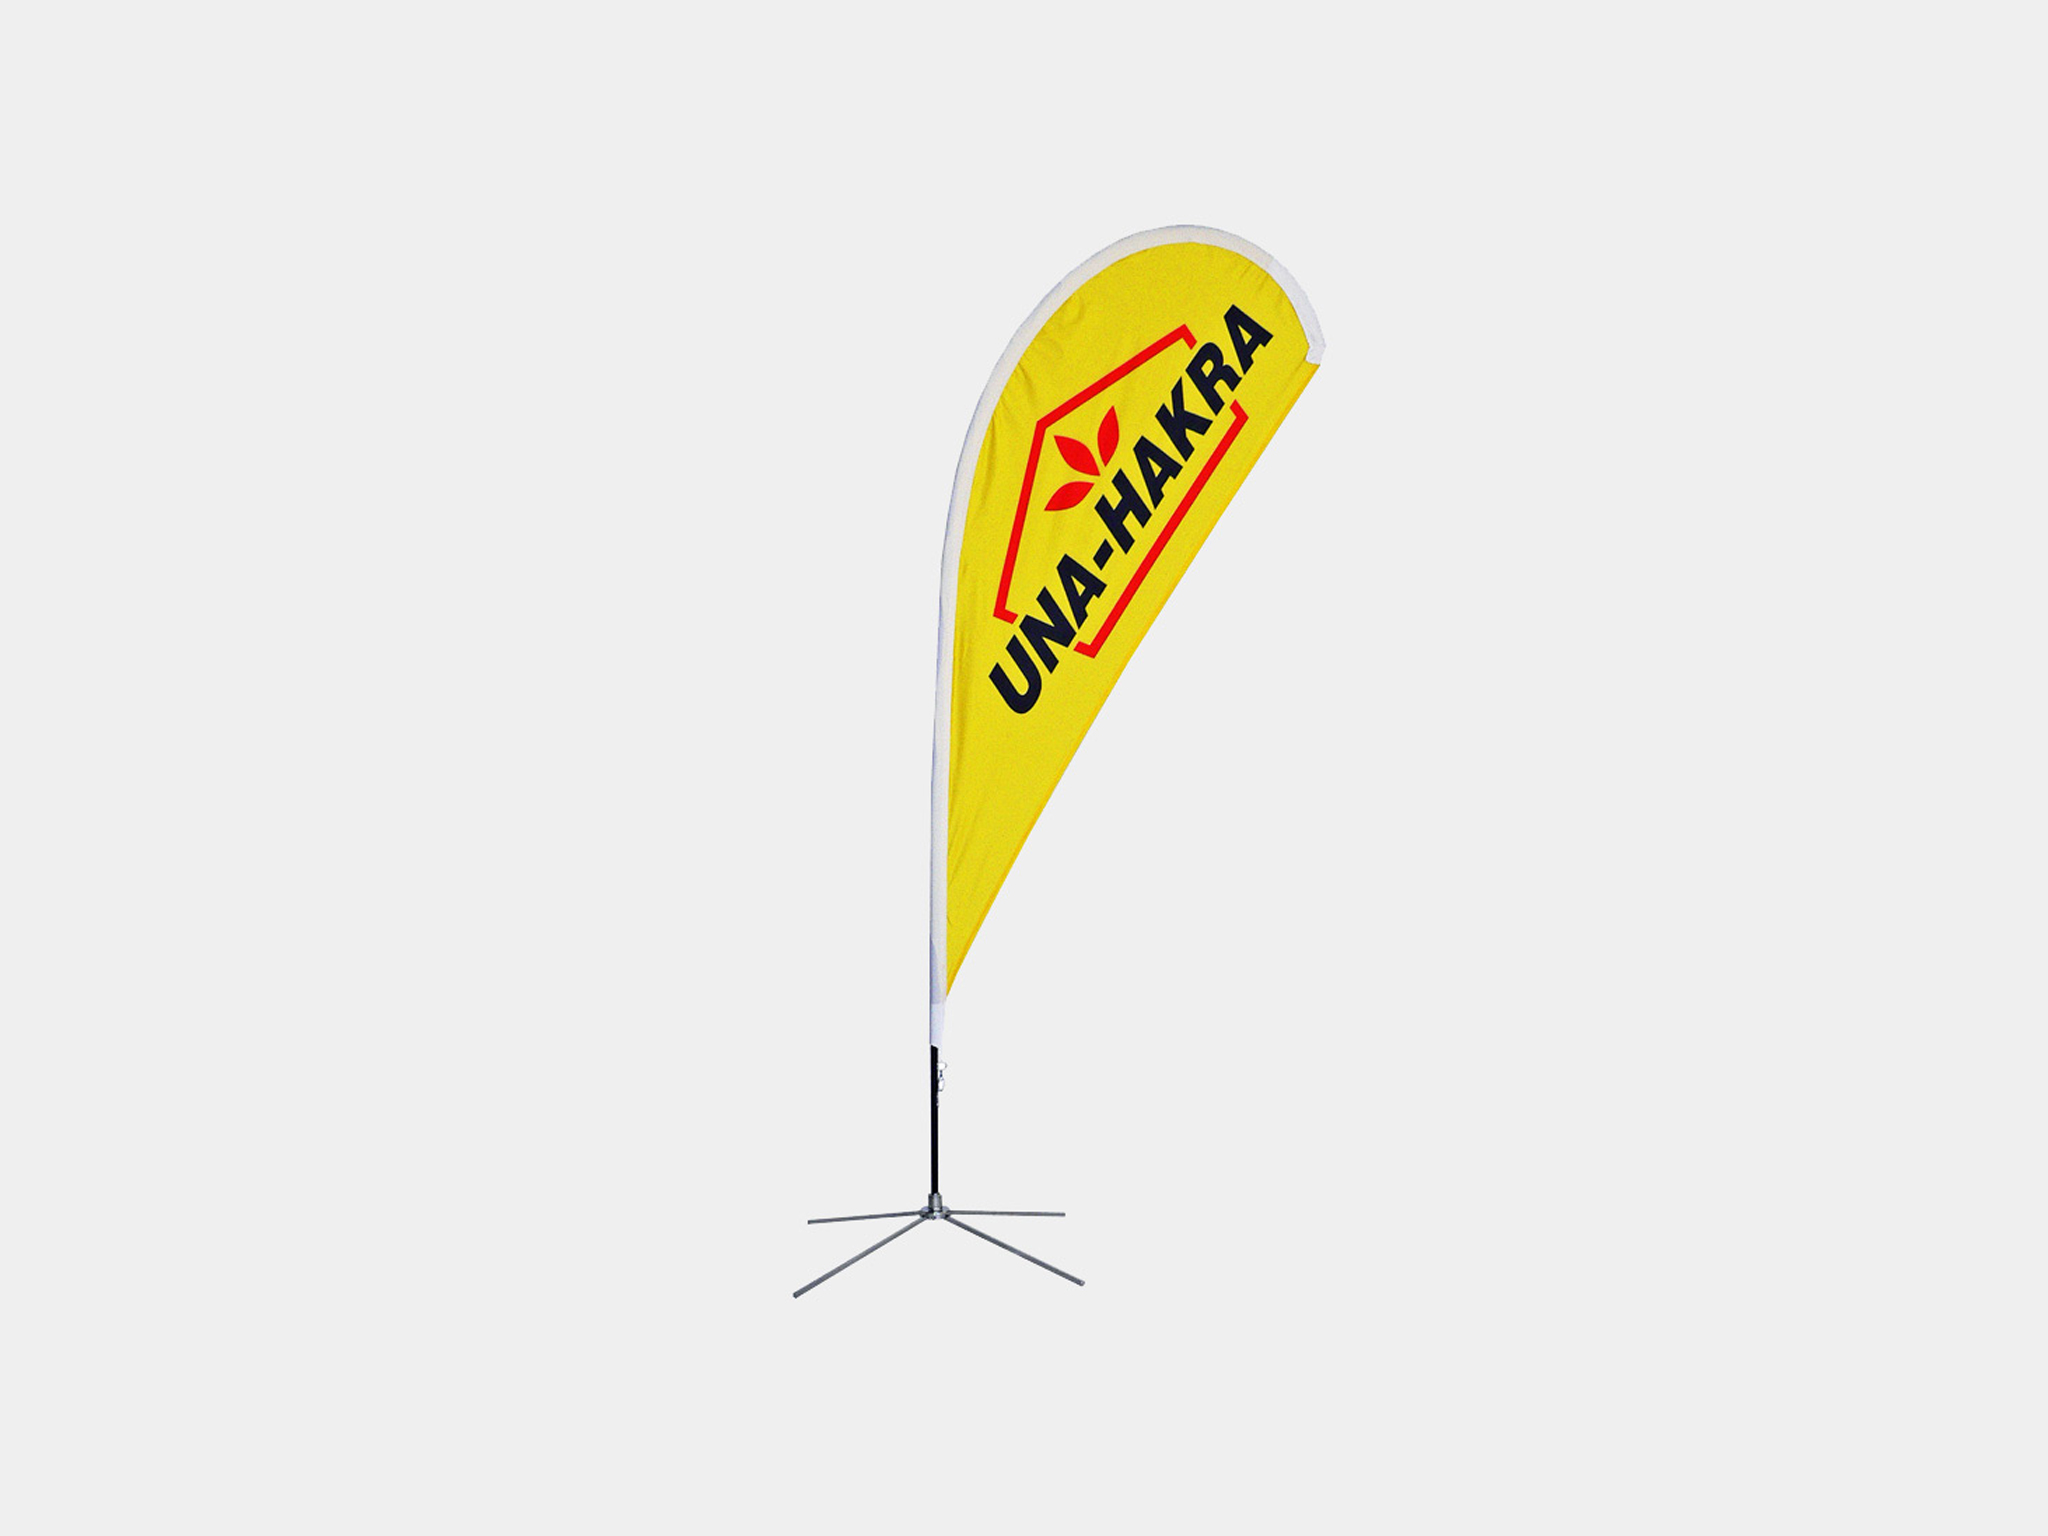 Outdoor Banner isyFlag, Beachflag, Flagge